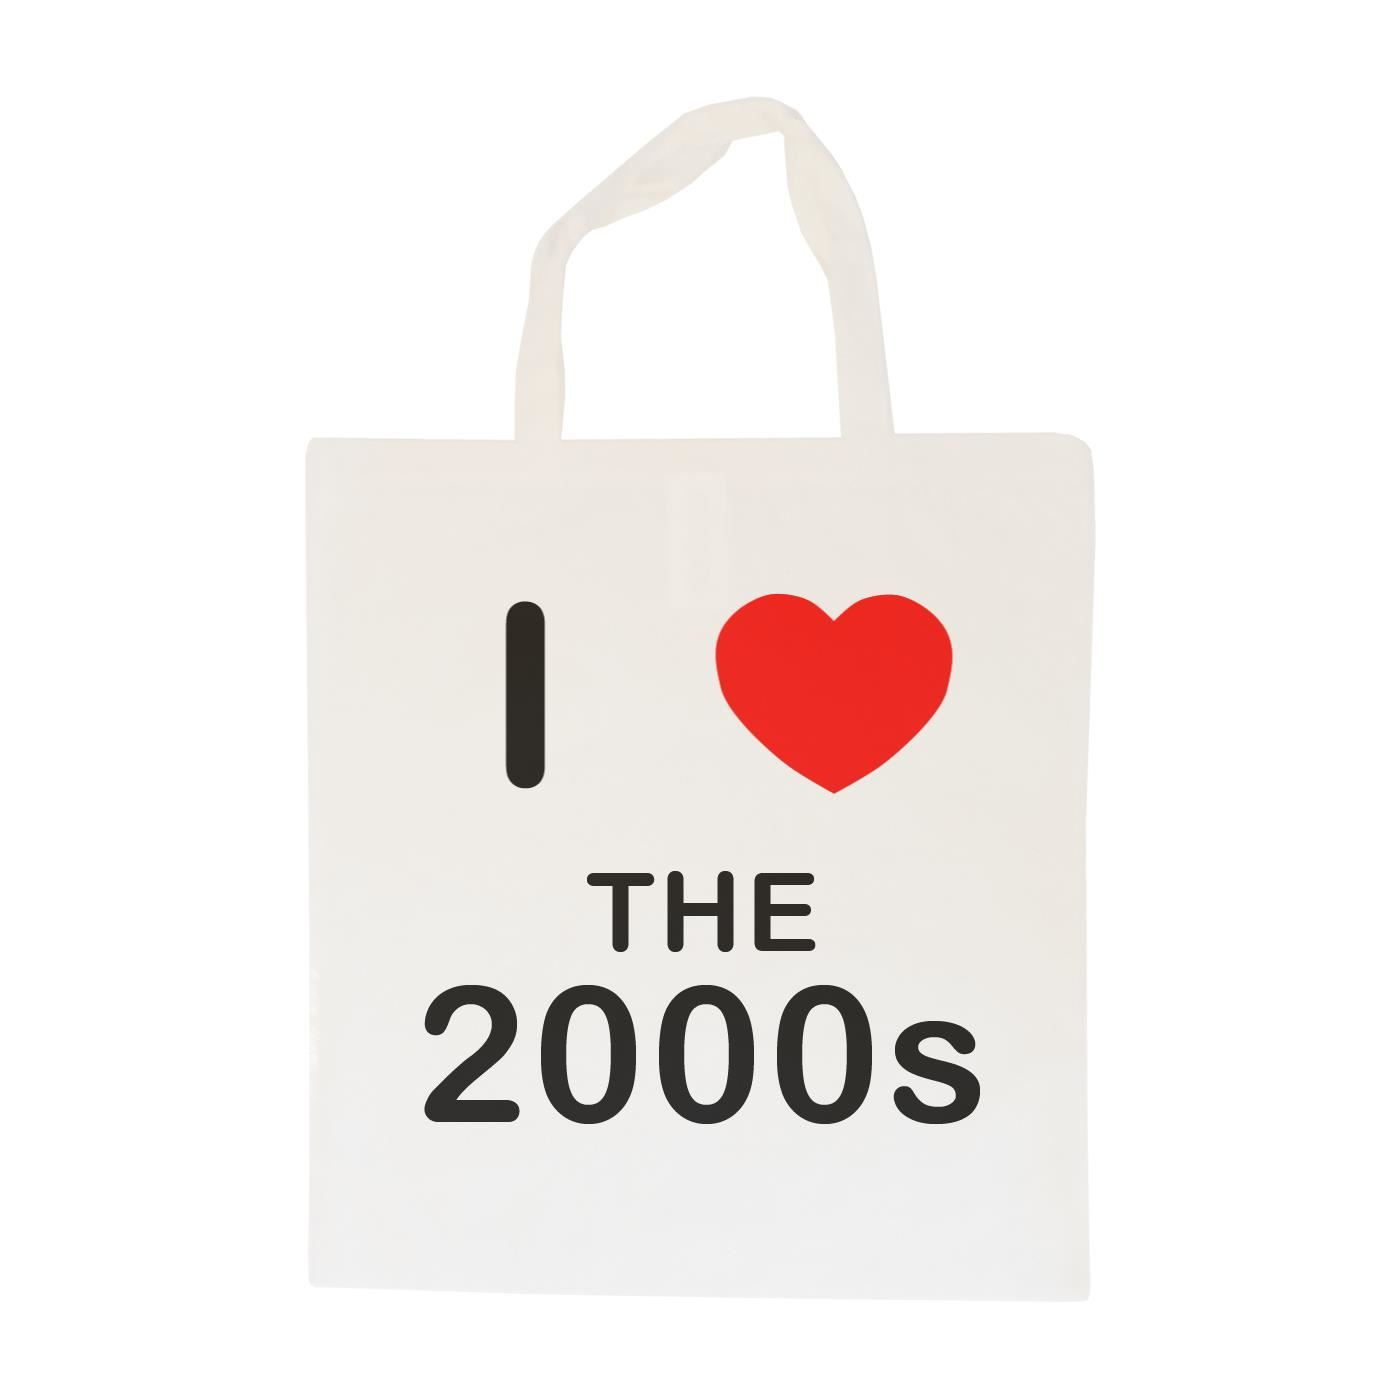 I Love The 2000's - Cotton Bag | Size choice Tote, Shopper or Sling